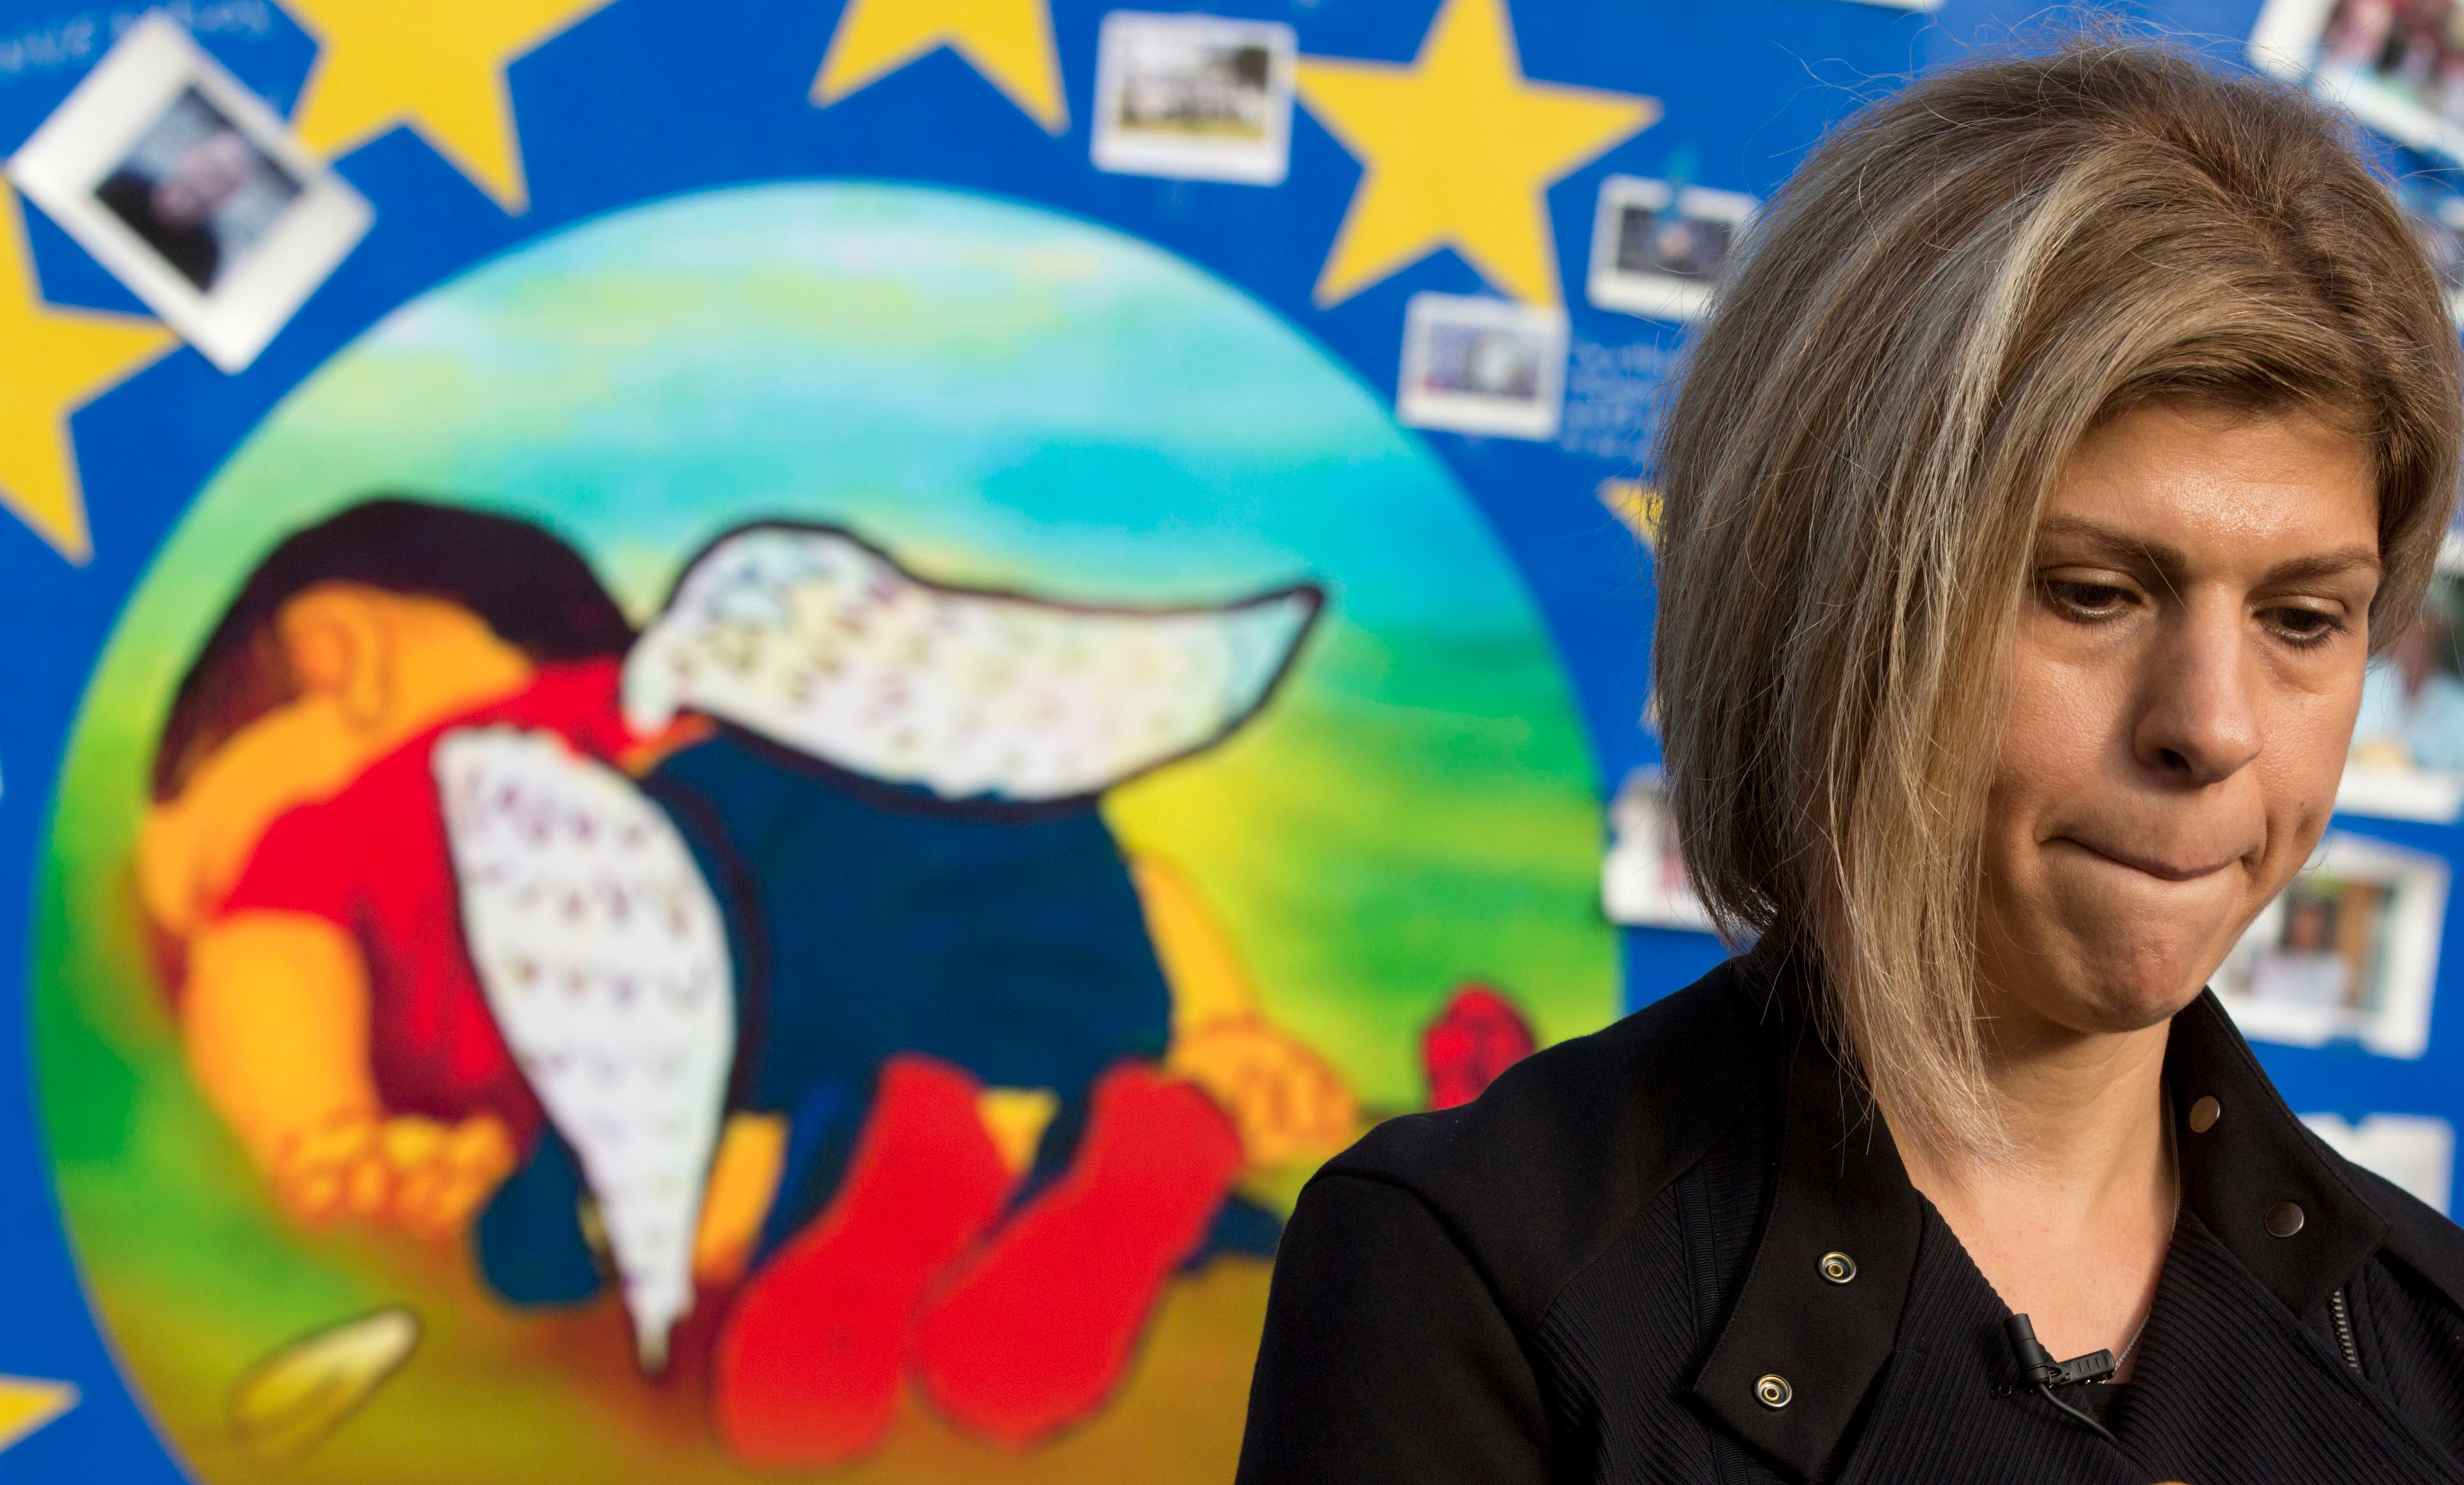 Fatima Kurdi, from Canada, stands next to a painting of her late nephew, Aylan Kurdi, on a board outside of EU headquarters in Brussels on Monday, Sept. 14, 2015.